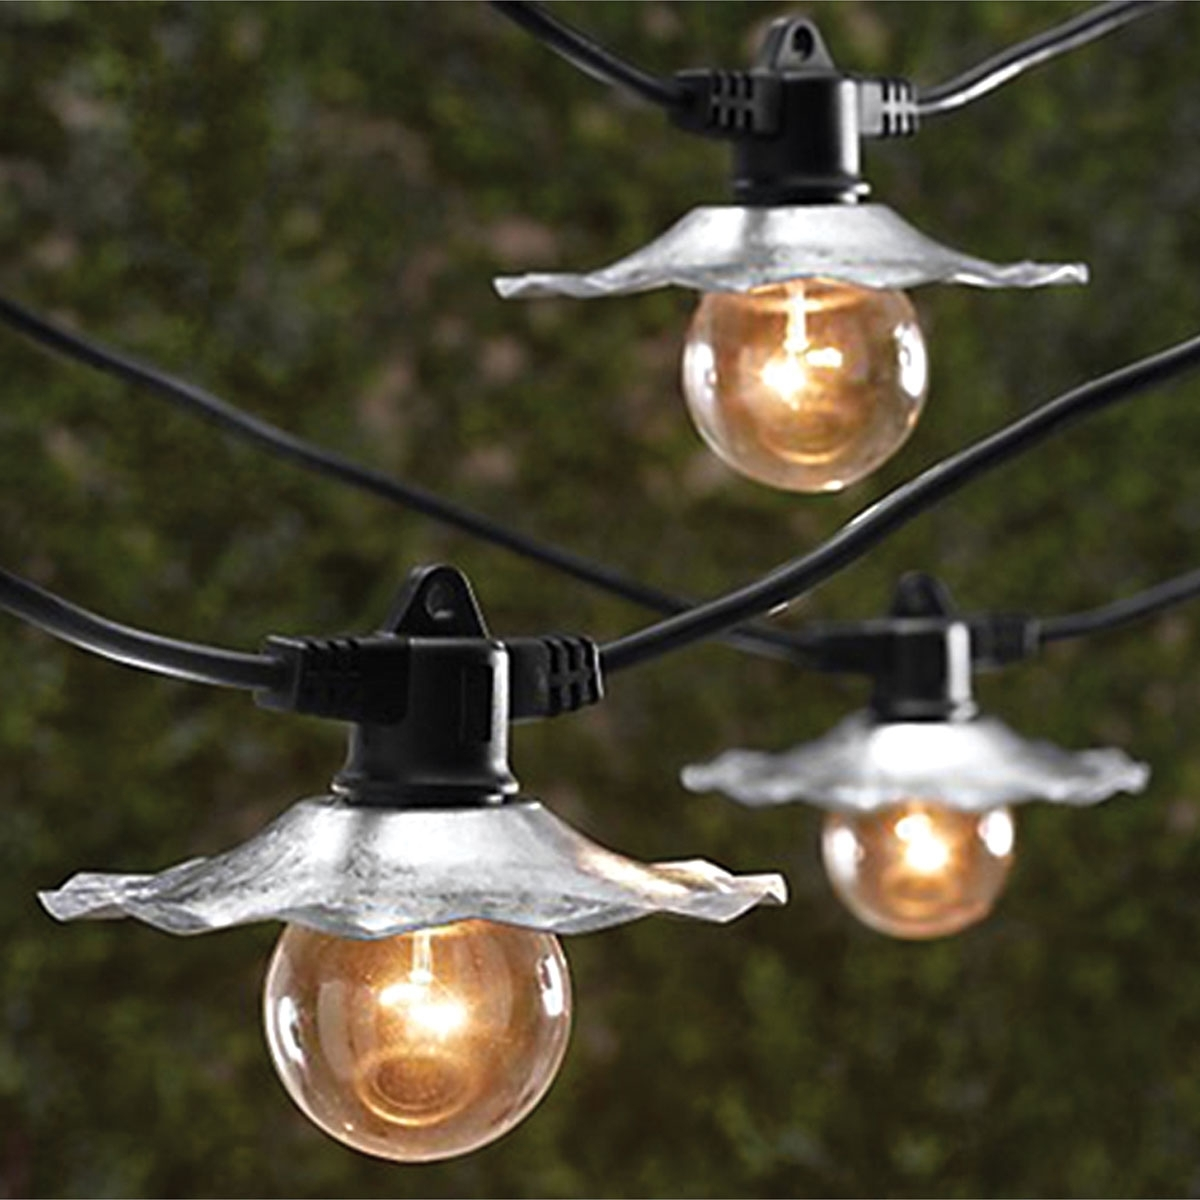 Hanging Outdoor Cafe Lights Intended For Preferred String Lights With Galvanized Silver Shades – 35 Ft (View 8 of 20)